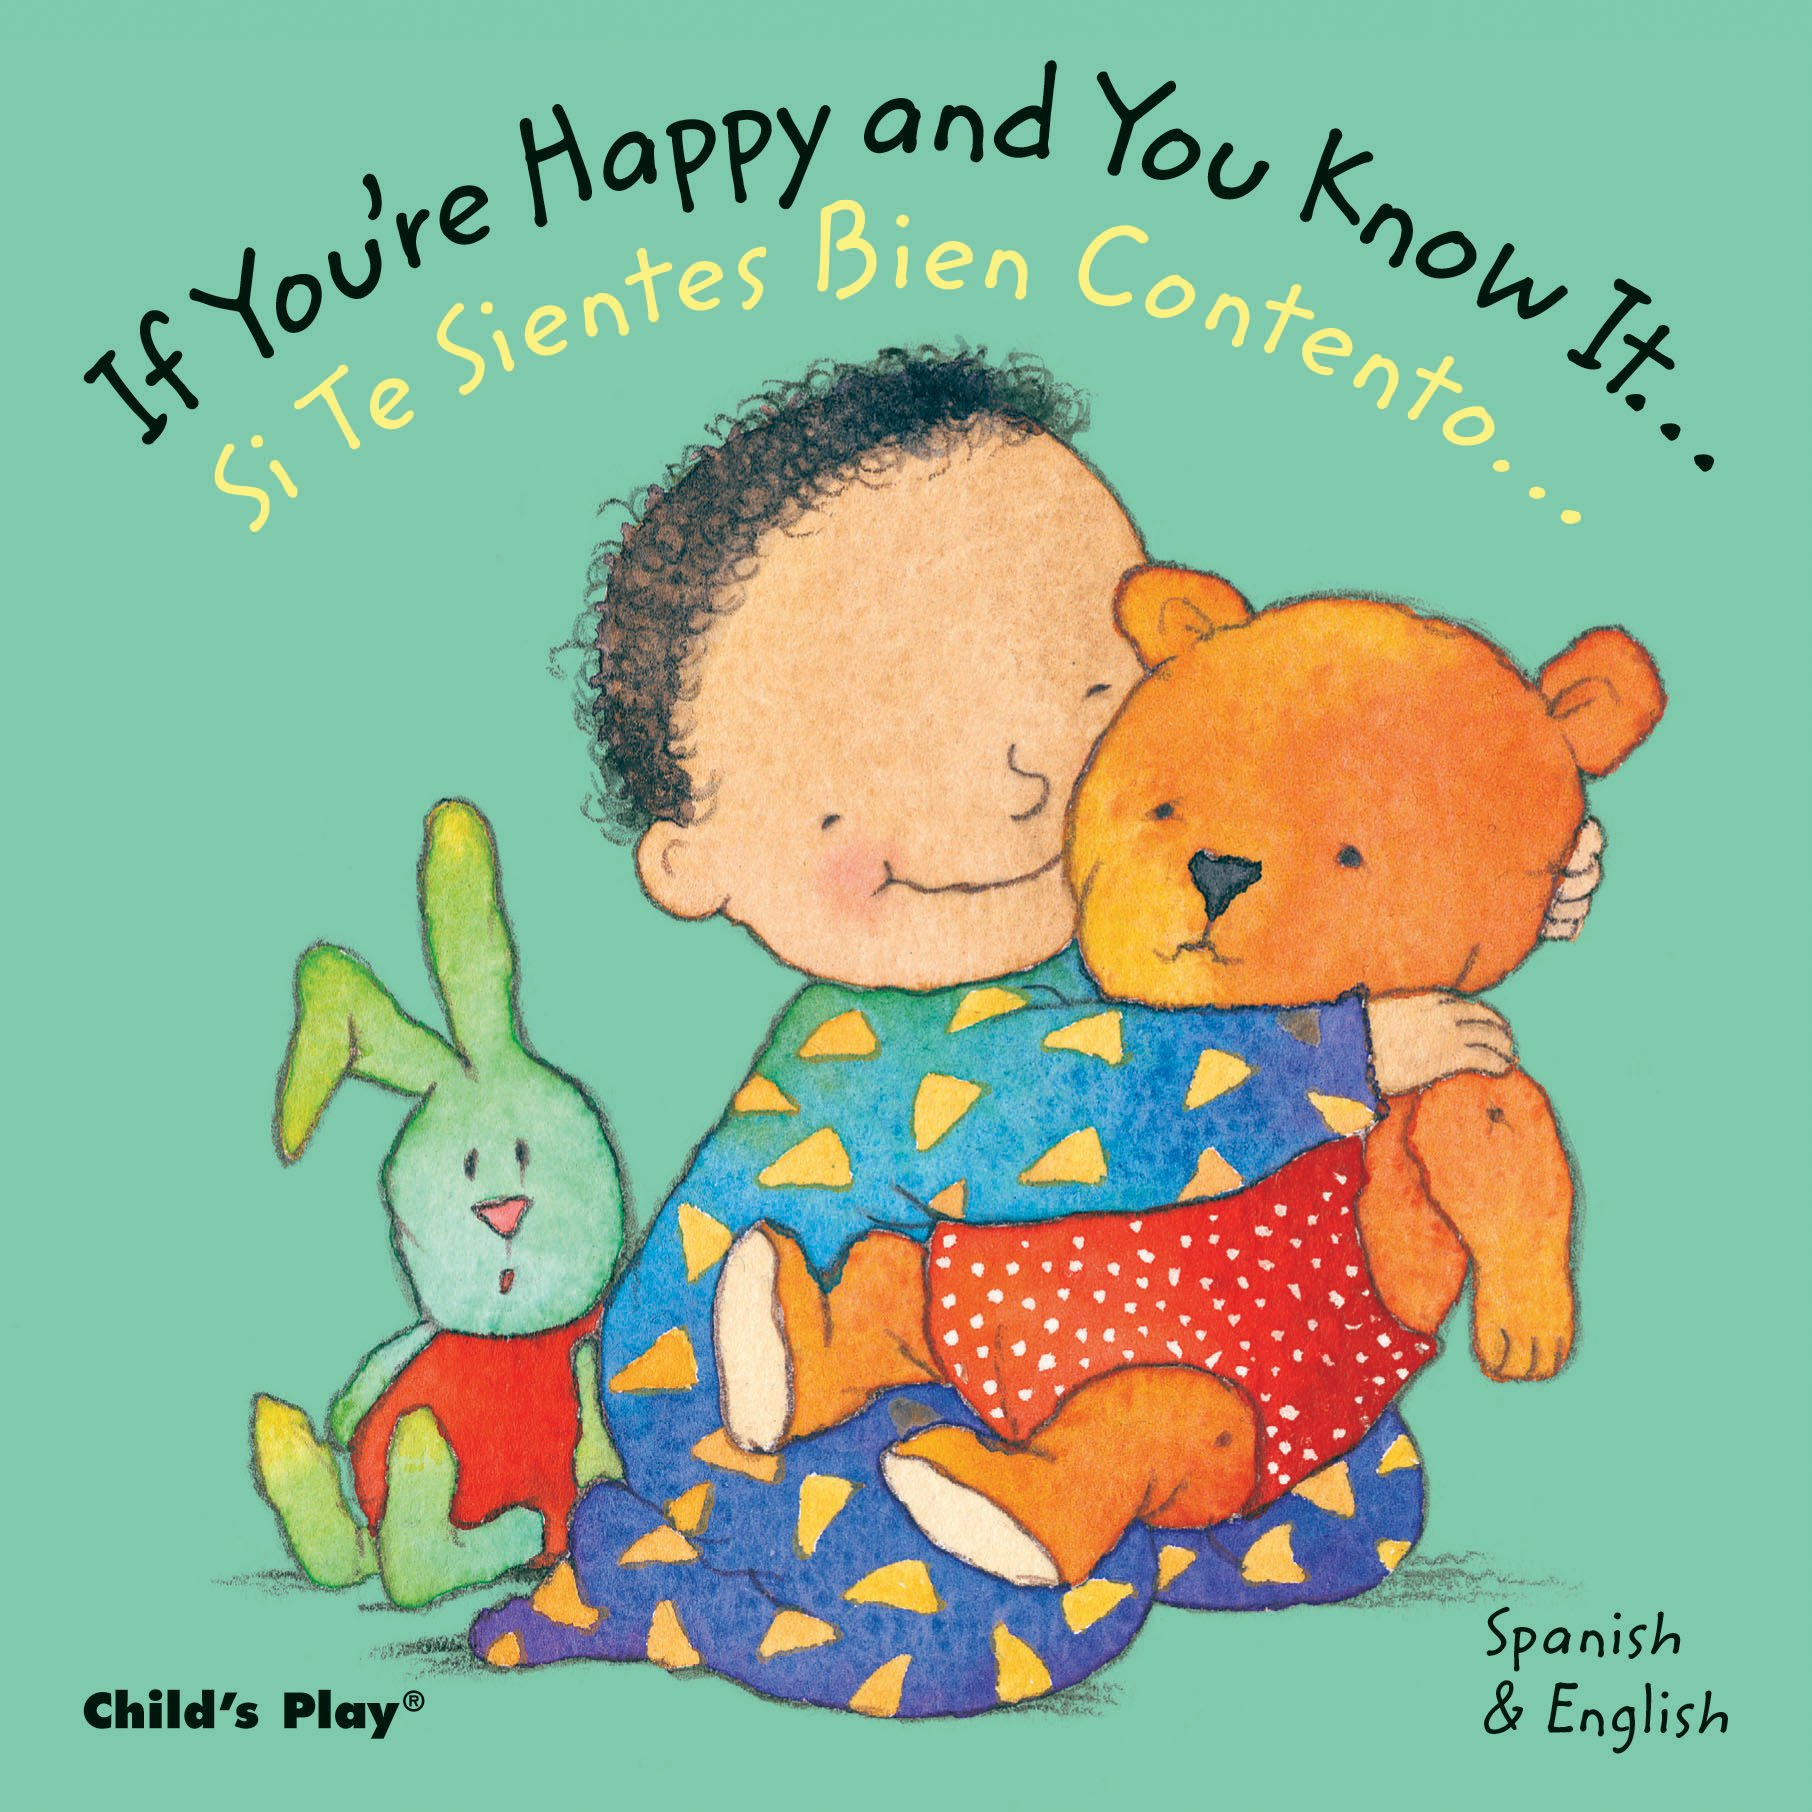 If You're Happy and You Know it.../Si Te Sientes Bien Contento... (Baby Board Books)